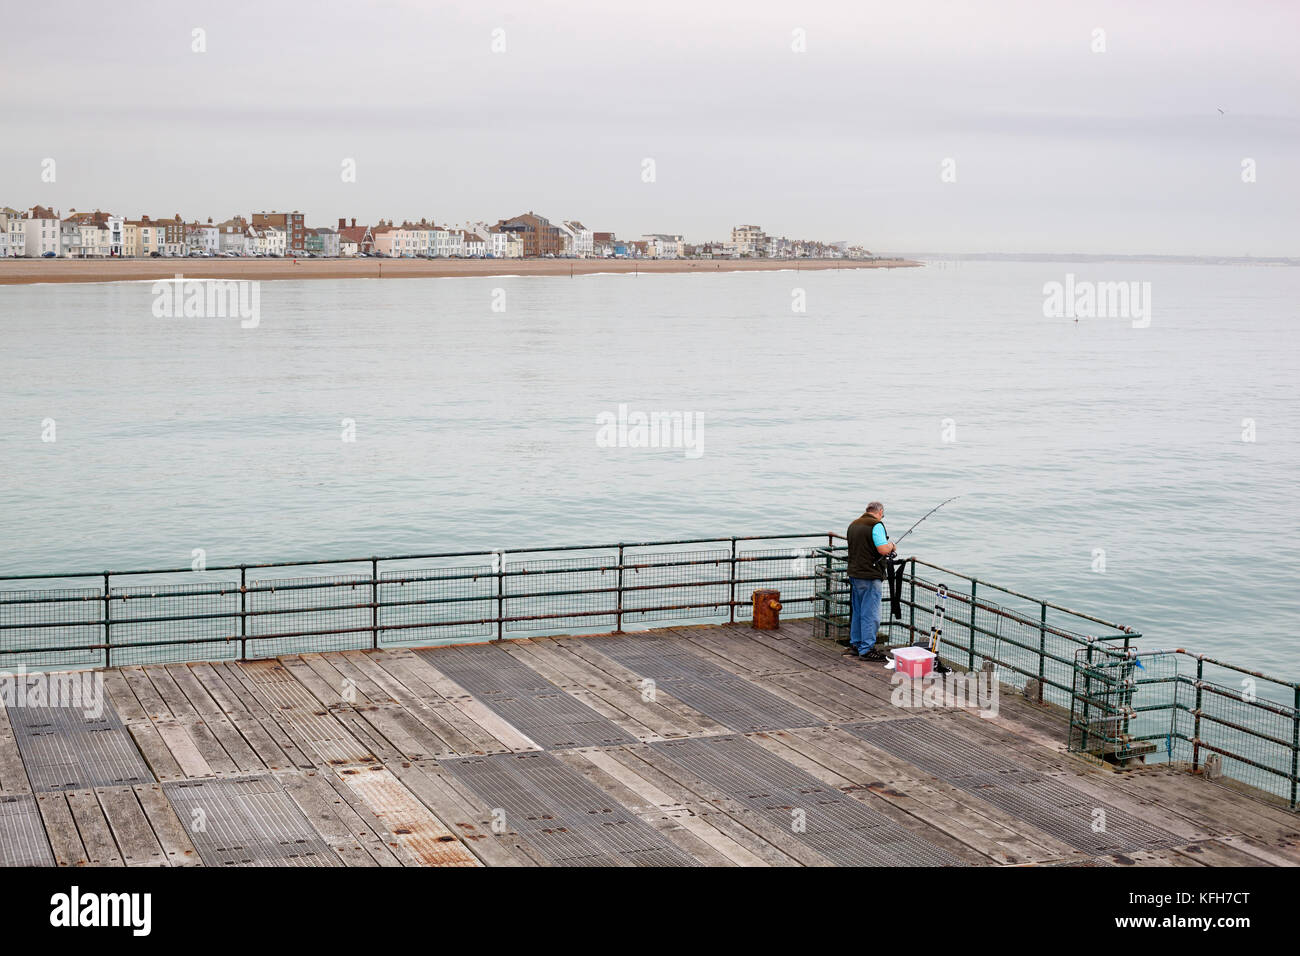 Fisherman fishing off Deal Pier with Deal seafront in mist behind, Deal, Kent, England, United Kingdom, Europe - Stock Image